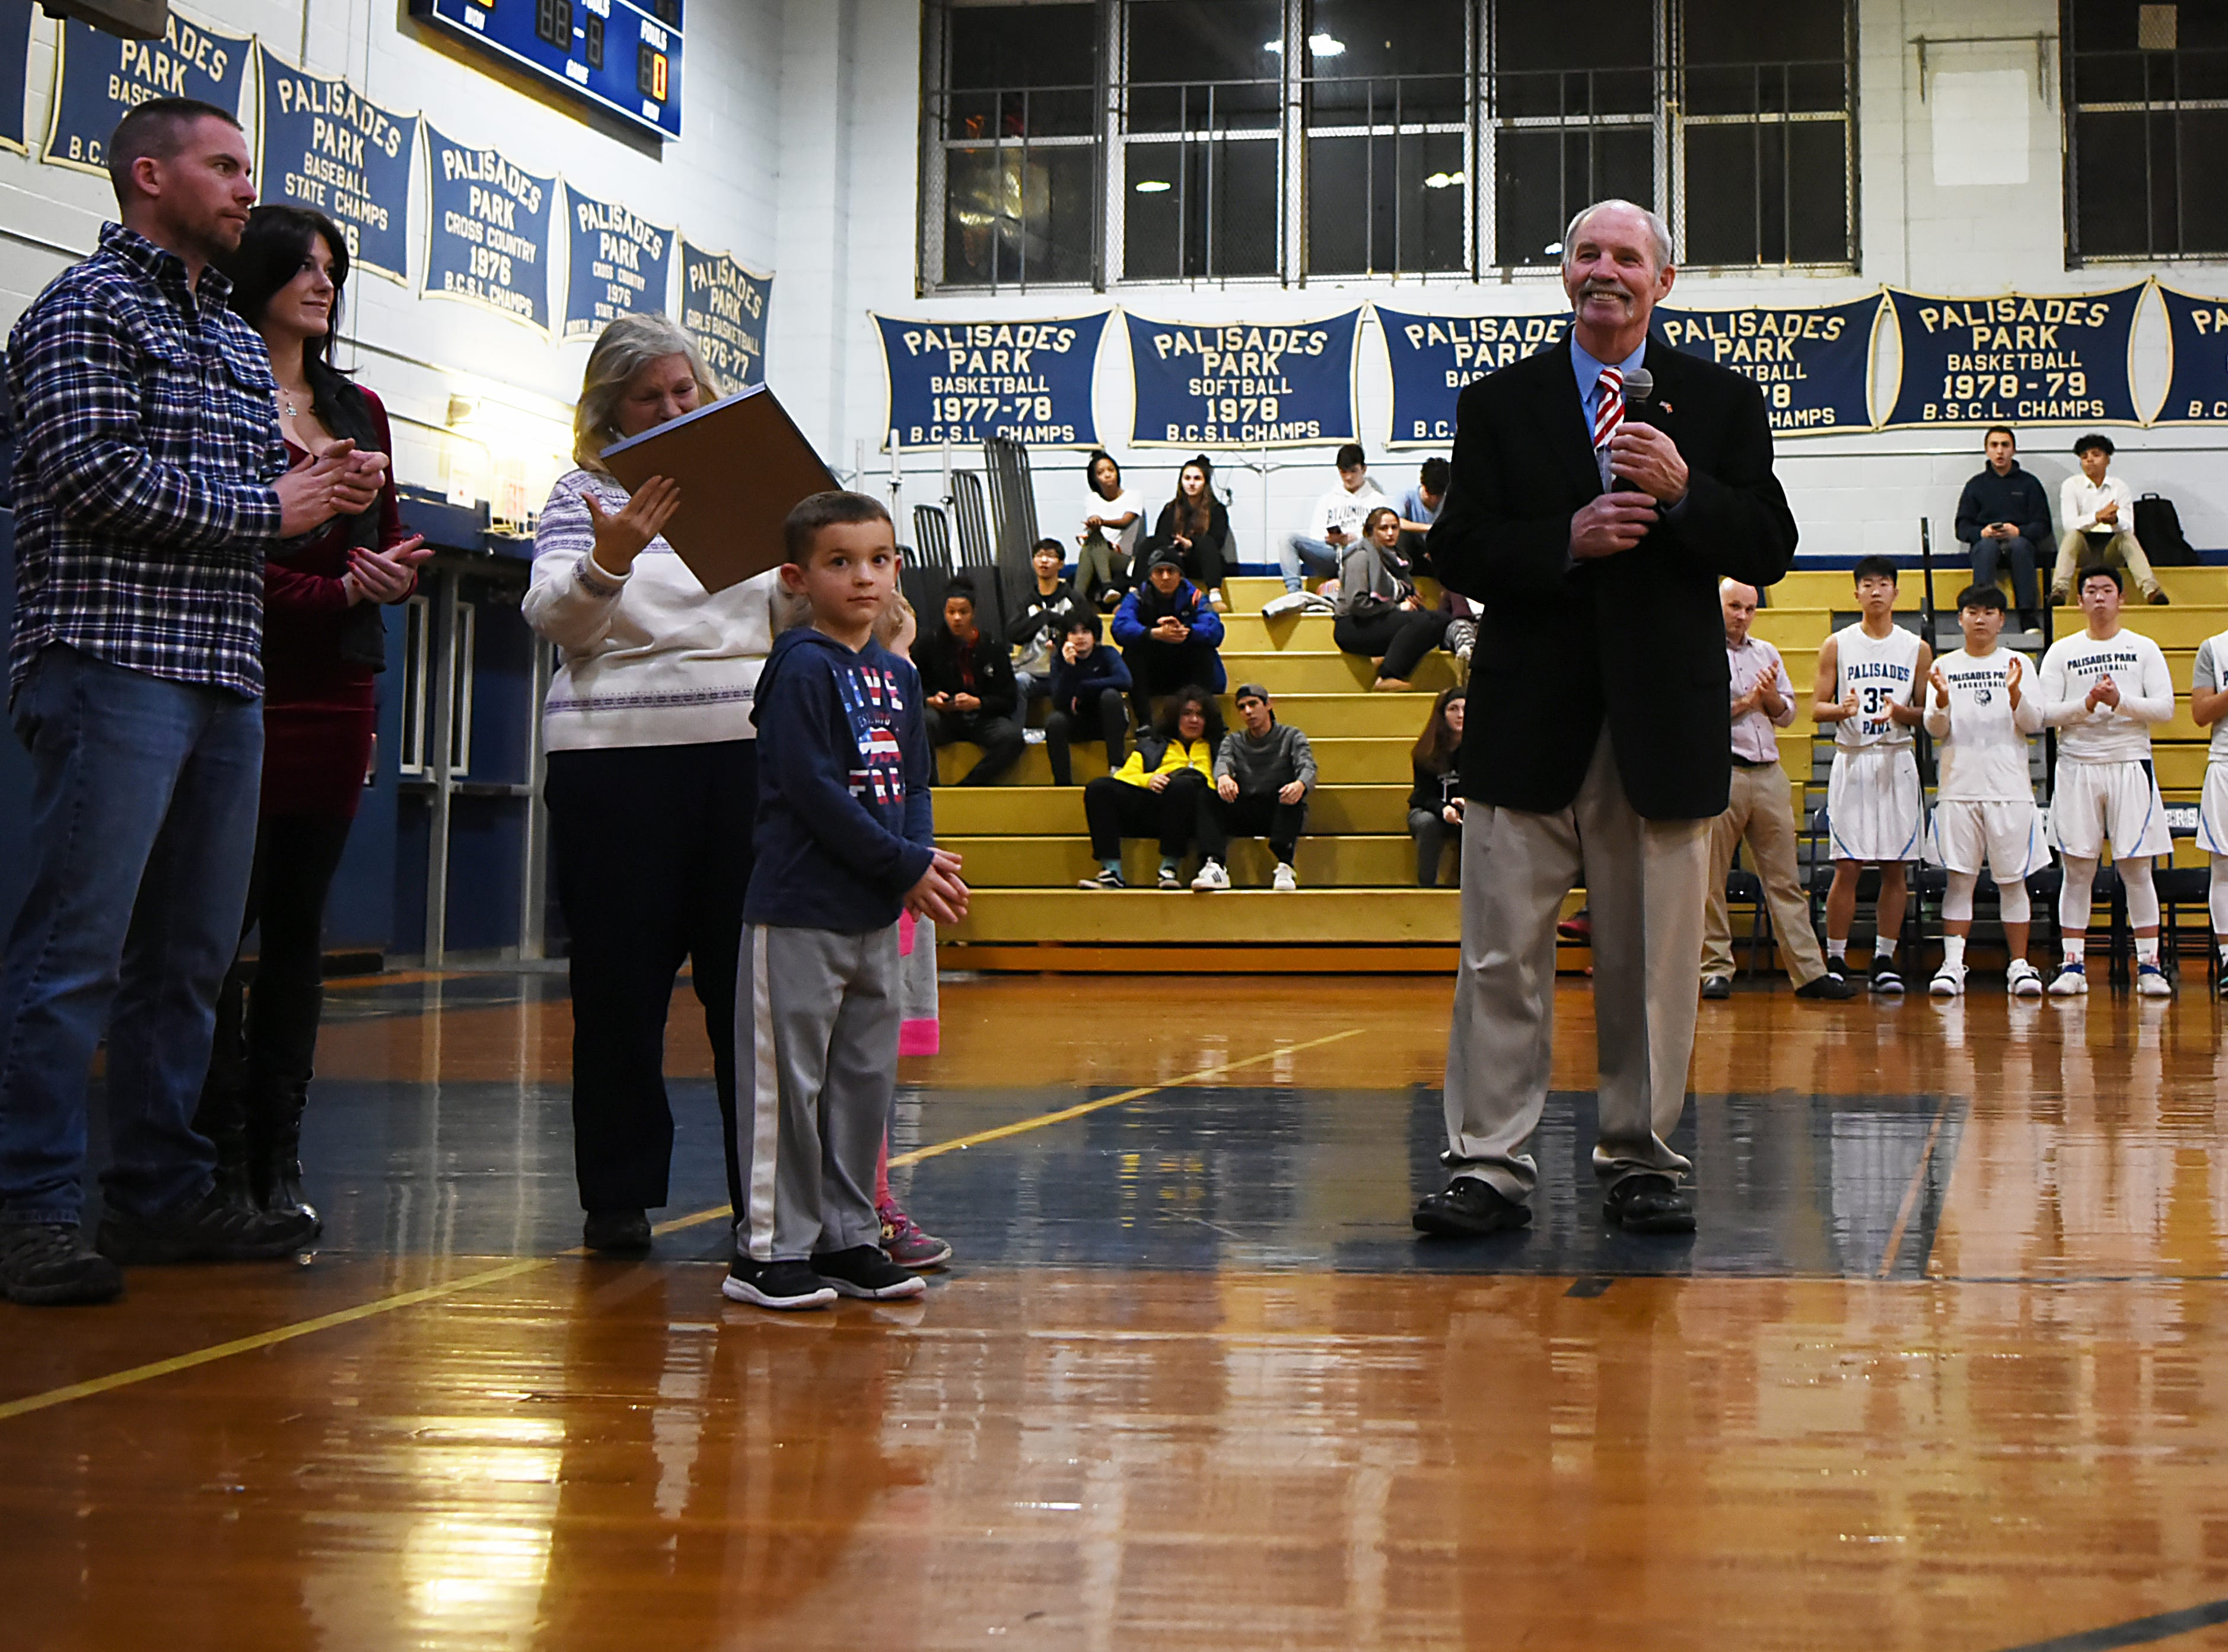 Palisades Park High School holds a ceremony to name the gym after John Wroblewski, long time athletic director on Friday December 14, 2018. John Wroblewski says a few words on the court as his family and the boys basketball team cheers him on.